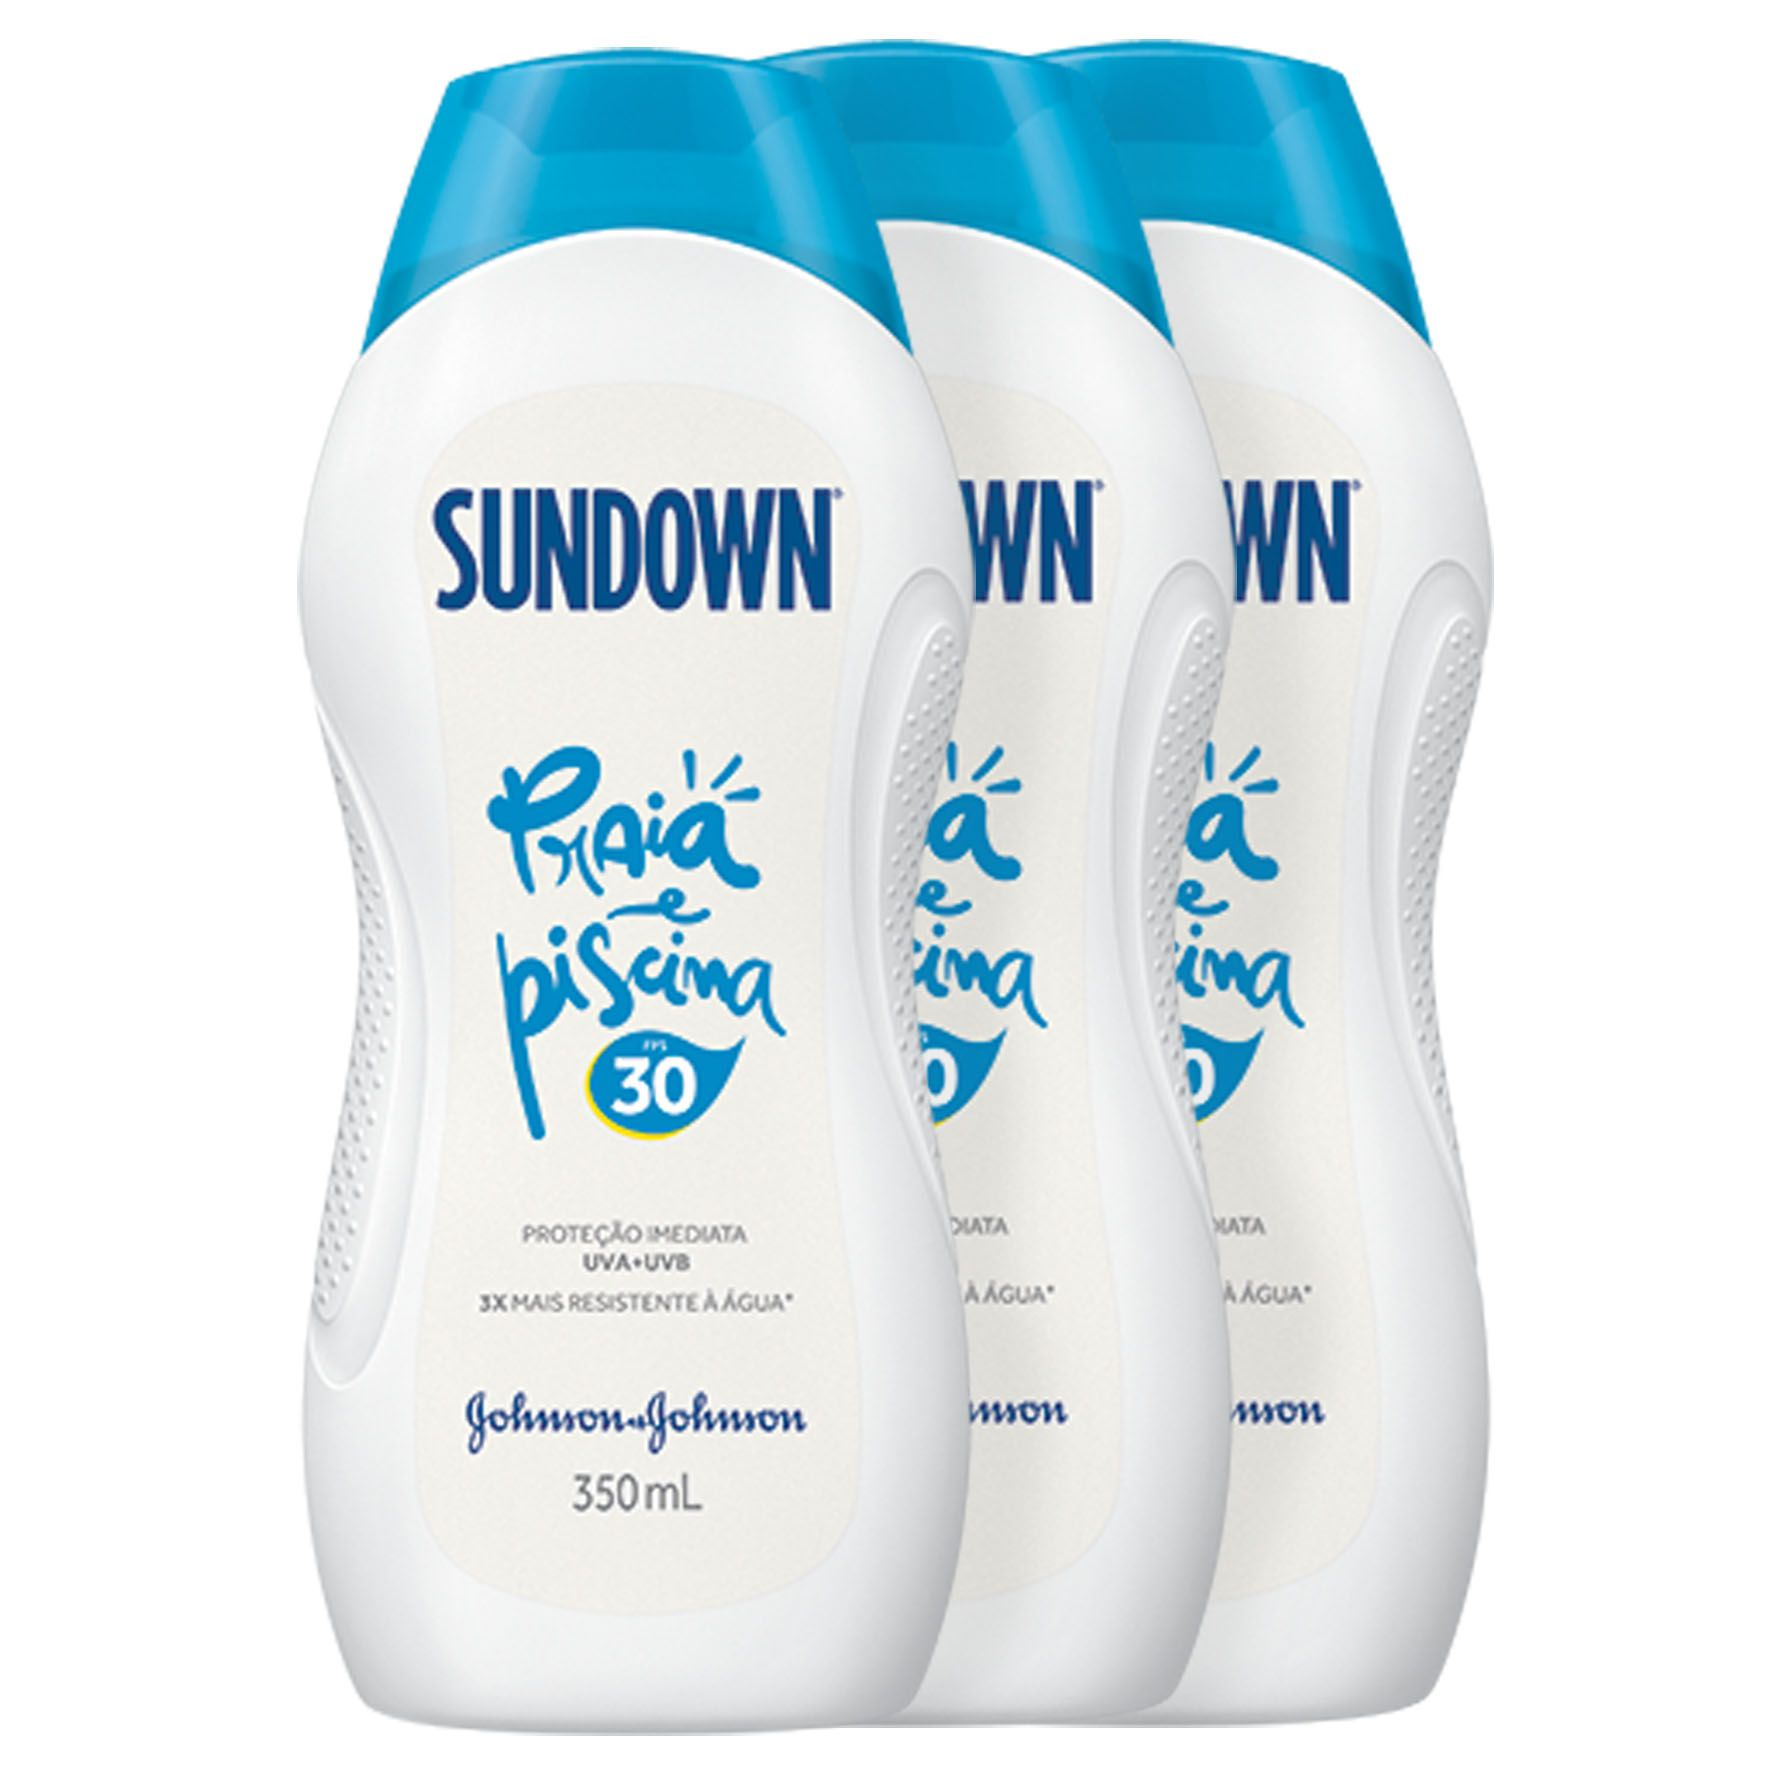 Kit com 3 Protetor Solar Sundown Praia e Piscina FPS 30 350ml